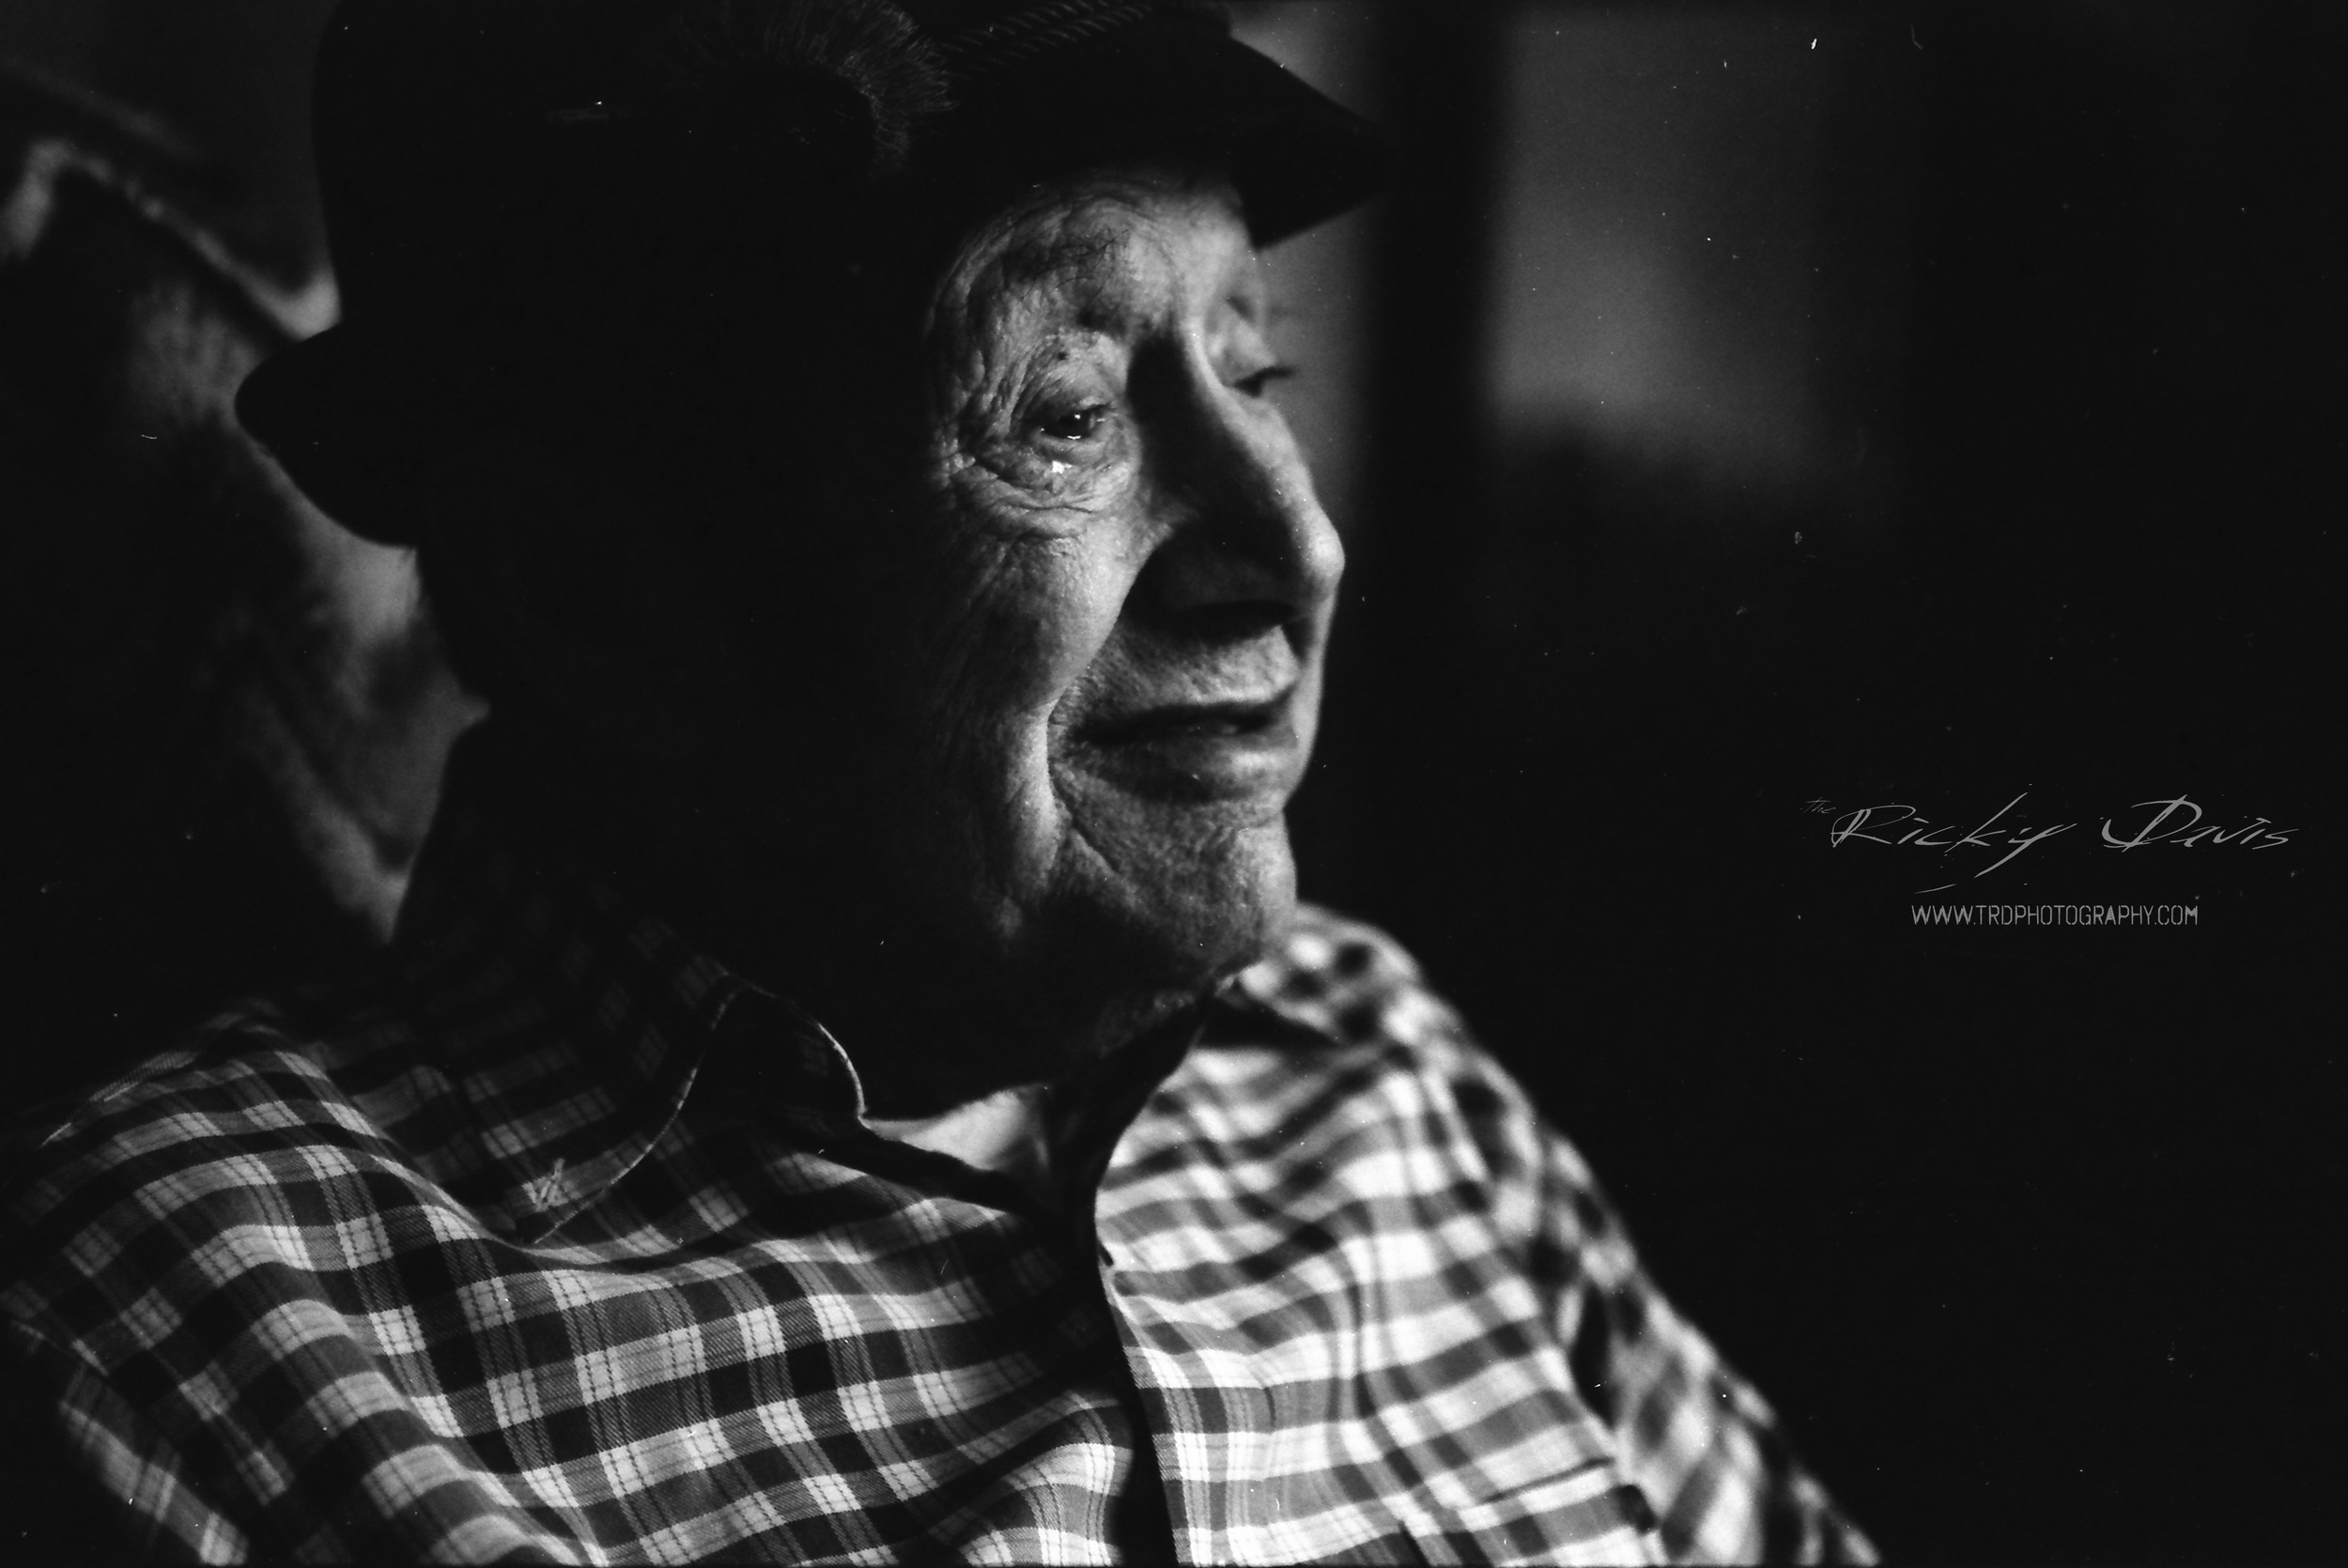 WWII Artilleryman - Pvt Ralph Davis - Photographer Ricky Davis of TRD Photography - Expired Kodak T-Max100 Film -